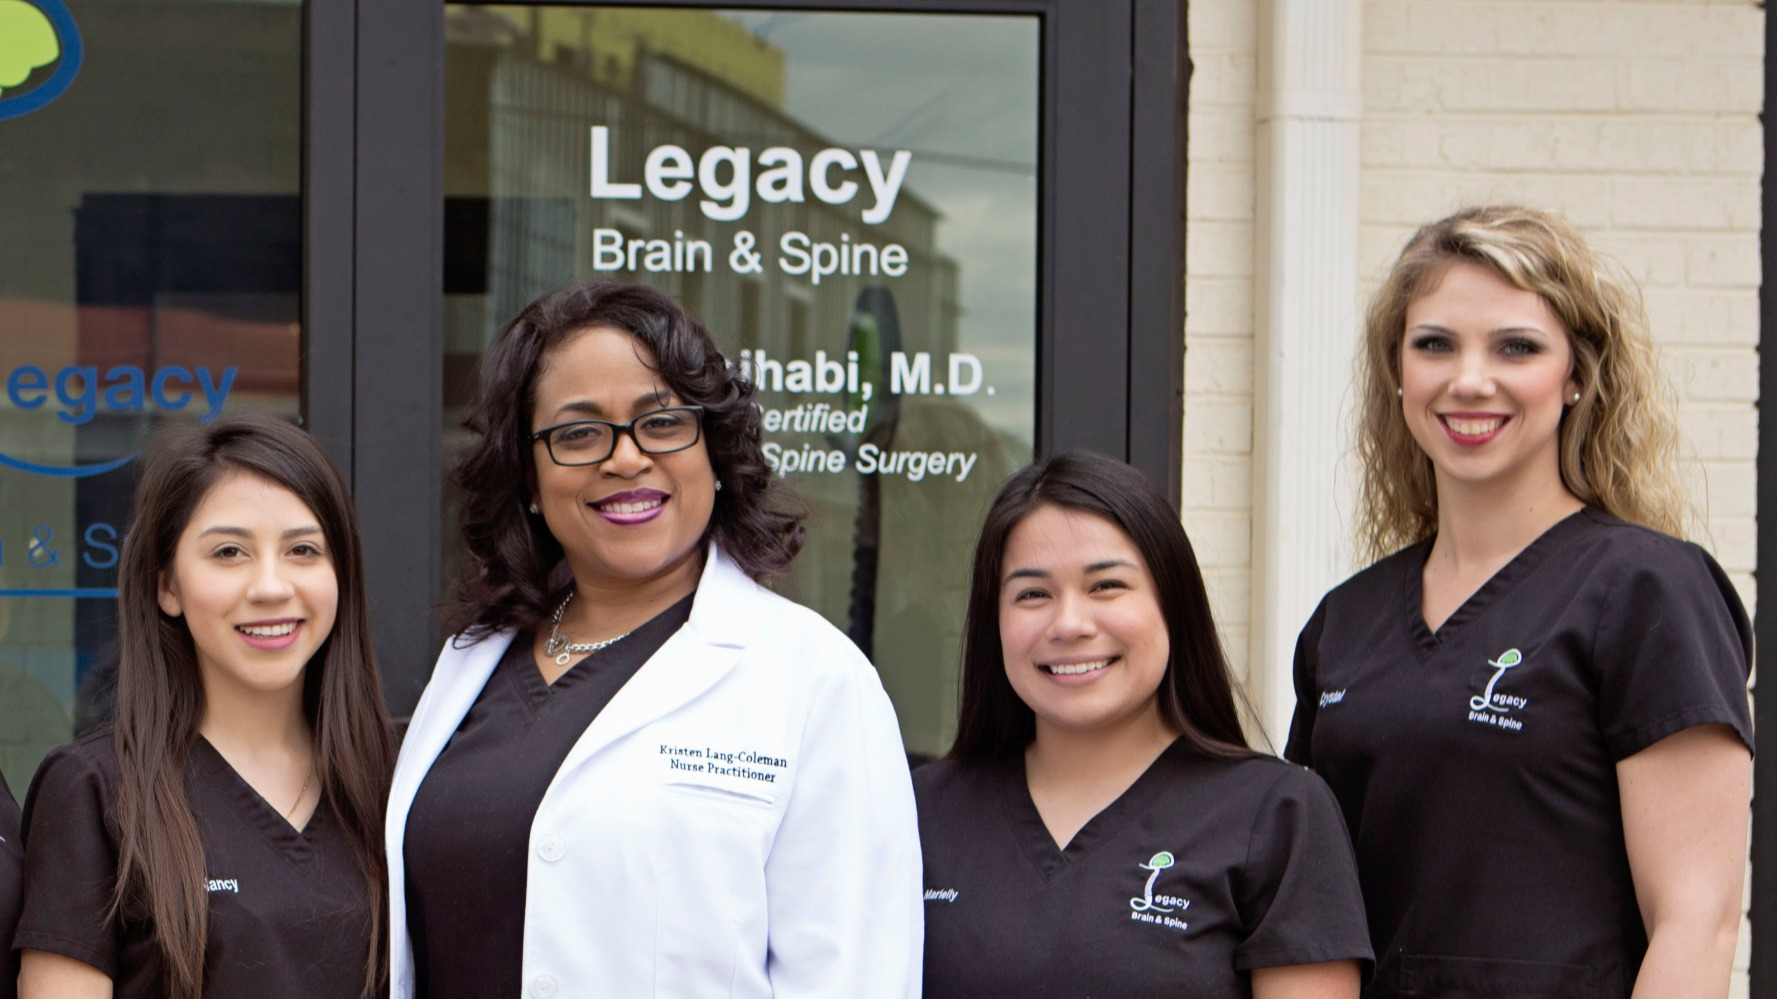 Legacy Brain & Spine Staff